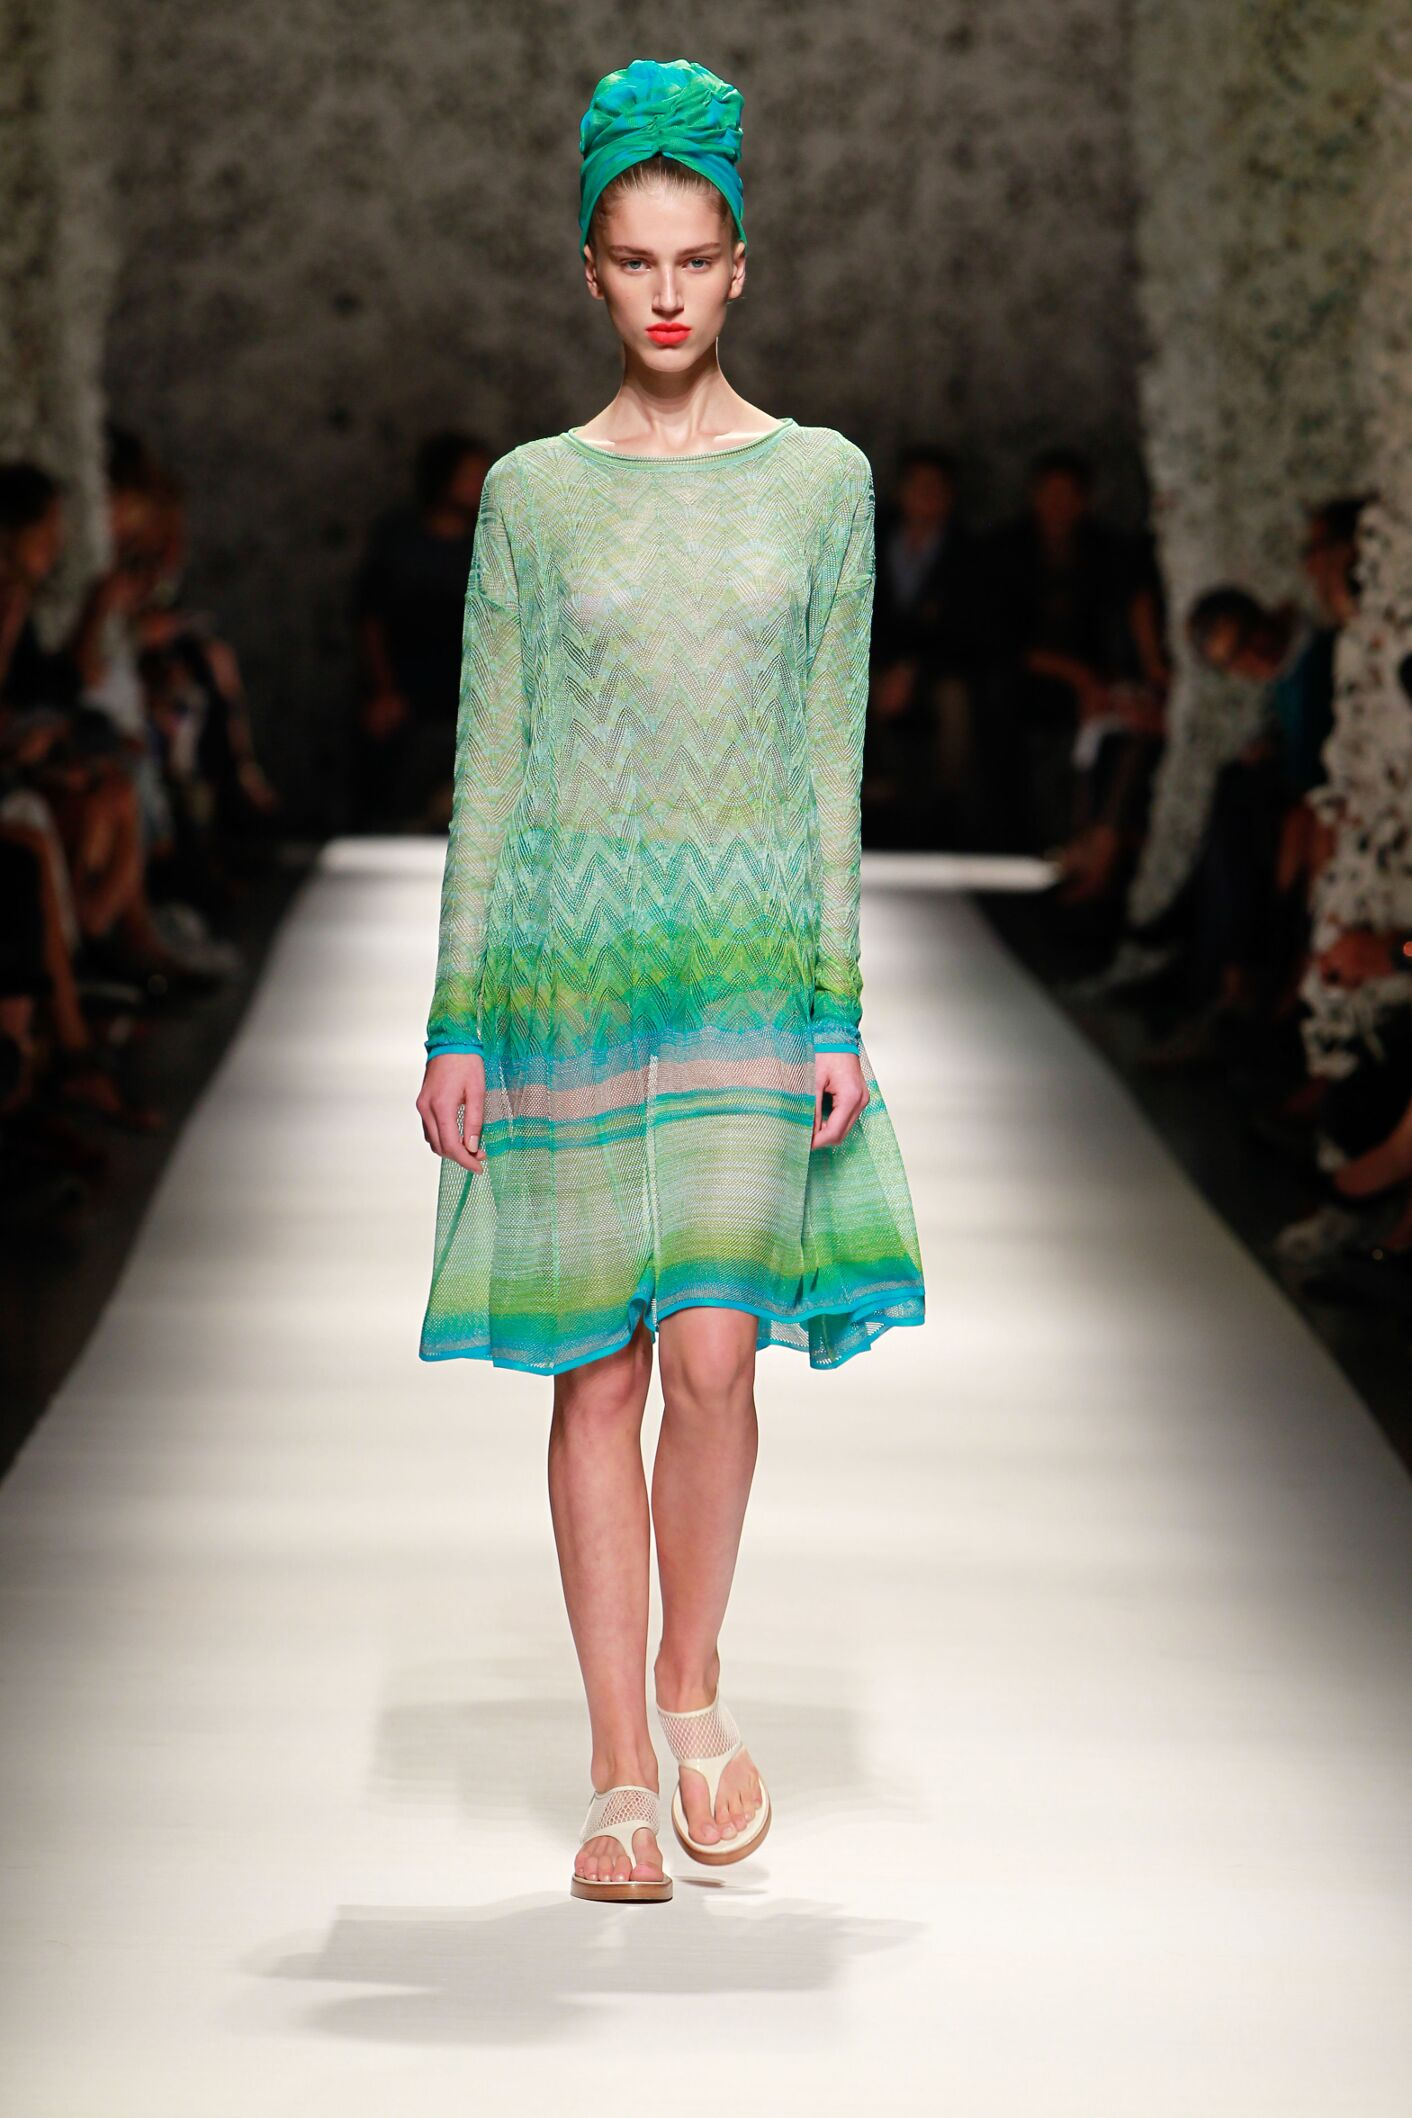 Fashion Model Missoni Catwalk